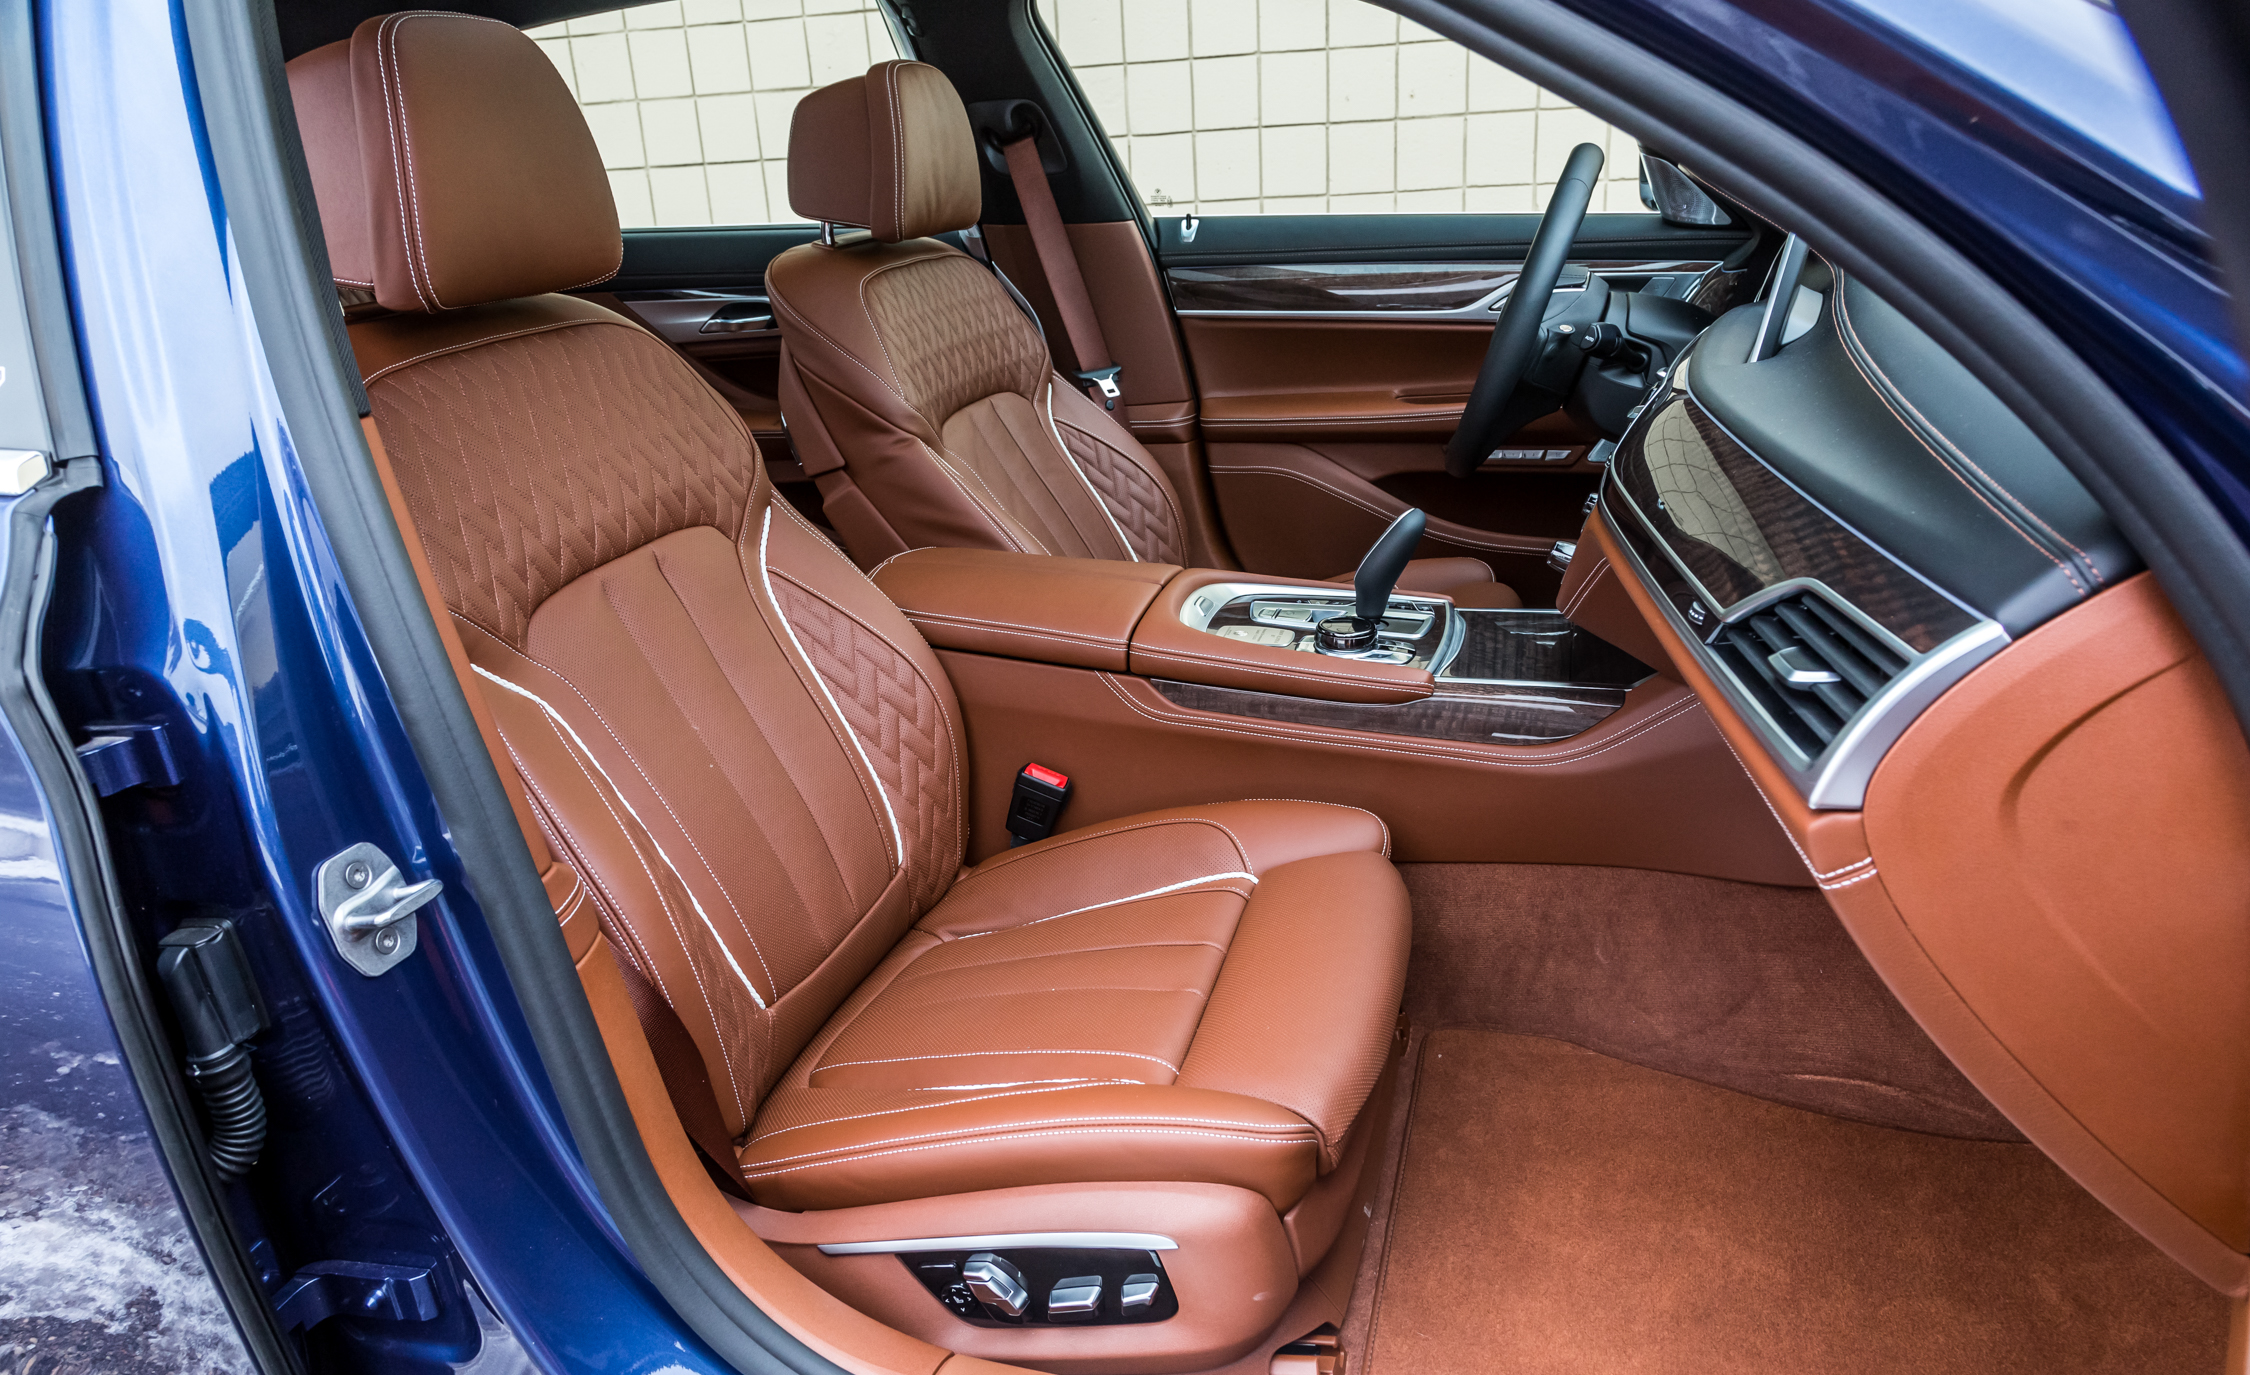 2017 BMW Alpina B7 XDrive Interior Seats Front (View 8 of 45)